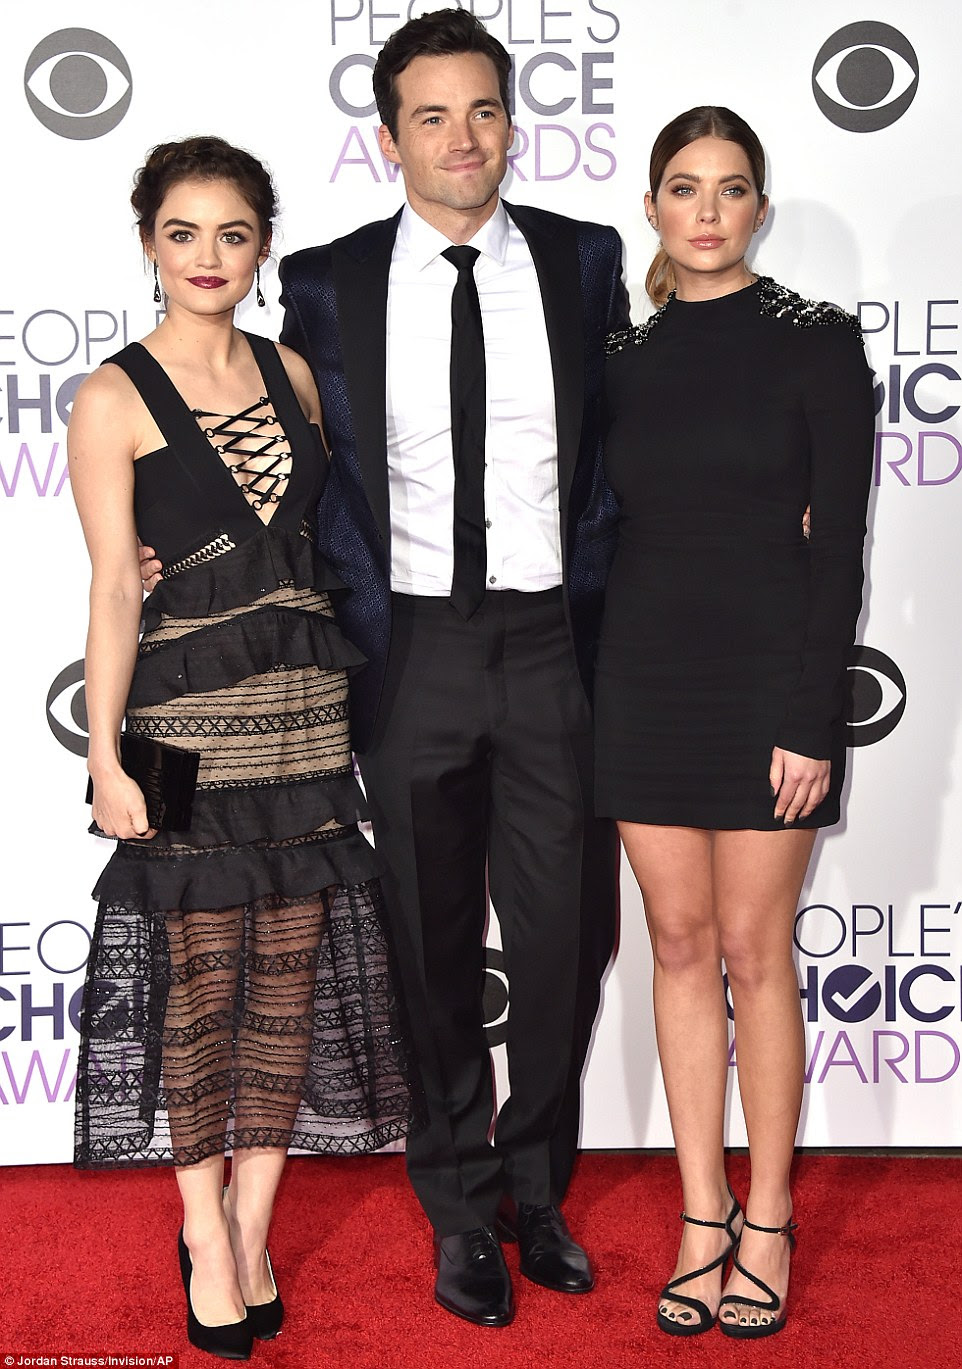 He's a lucky man: The show's hunk Ian Harding posed for photos with Lucy Hale and Ashley Benson